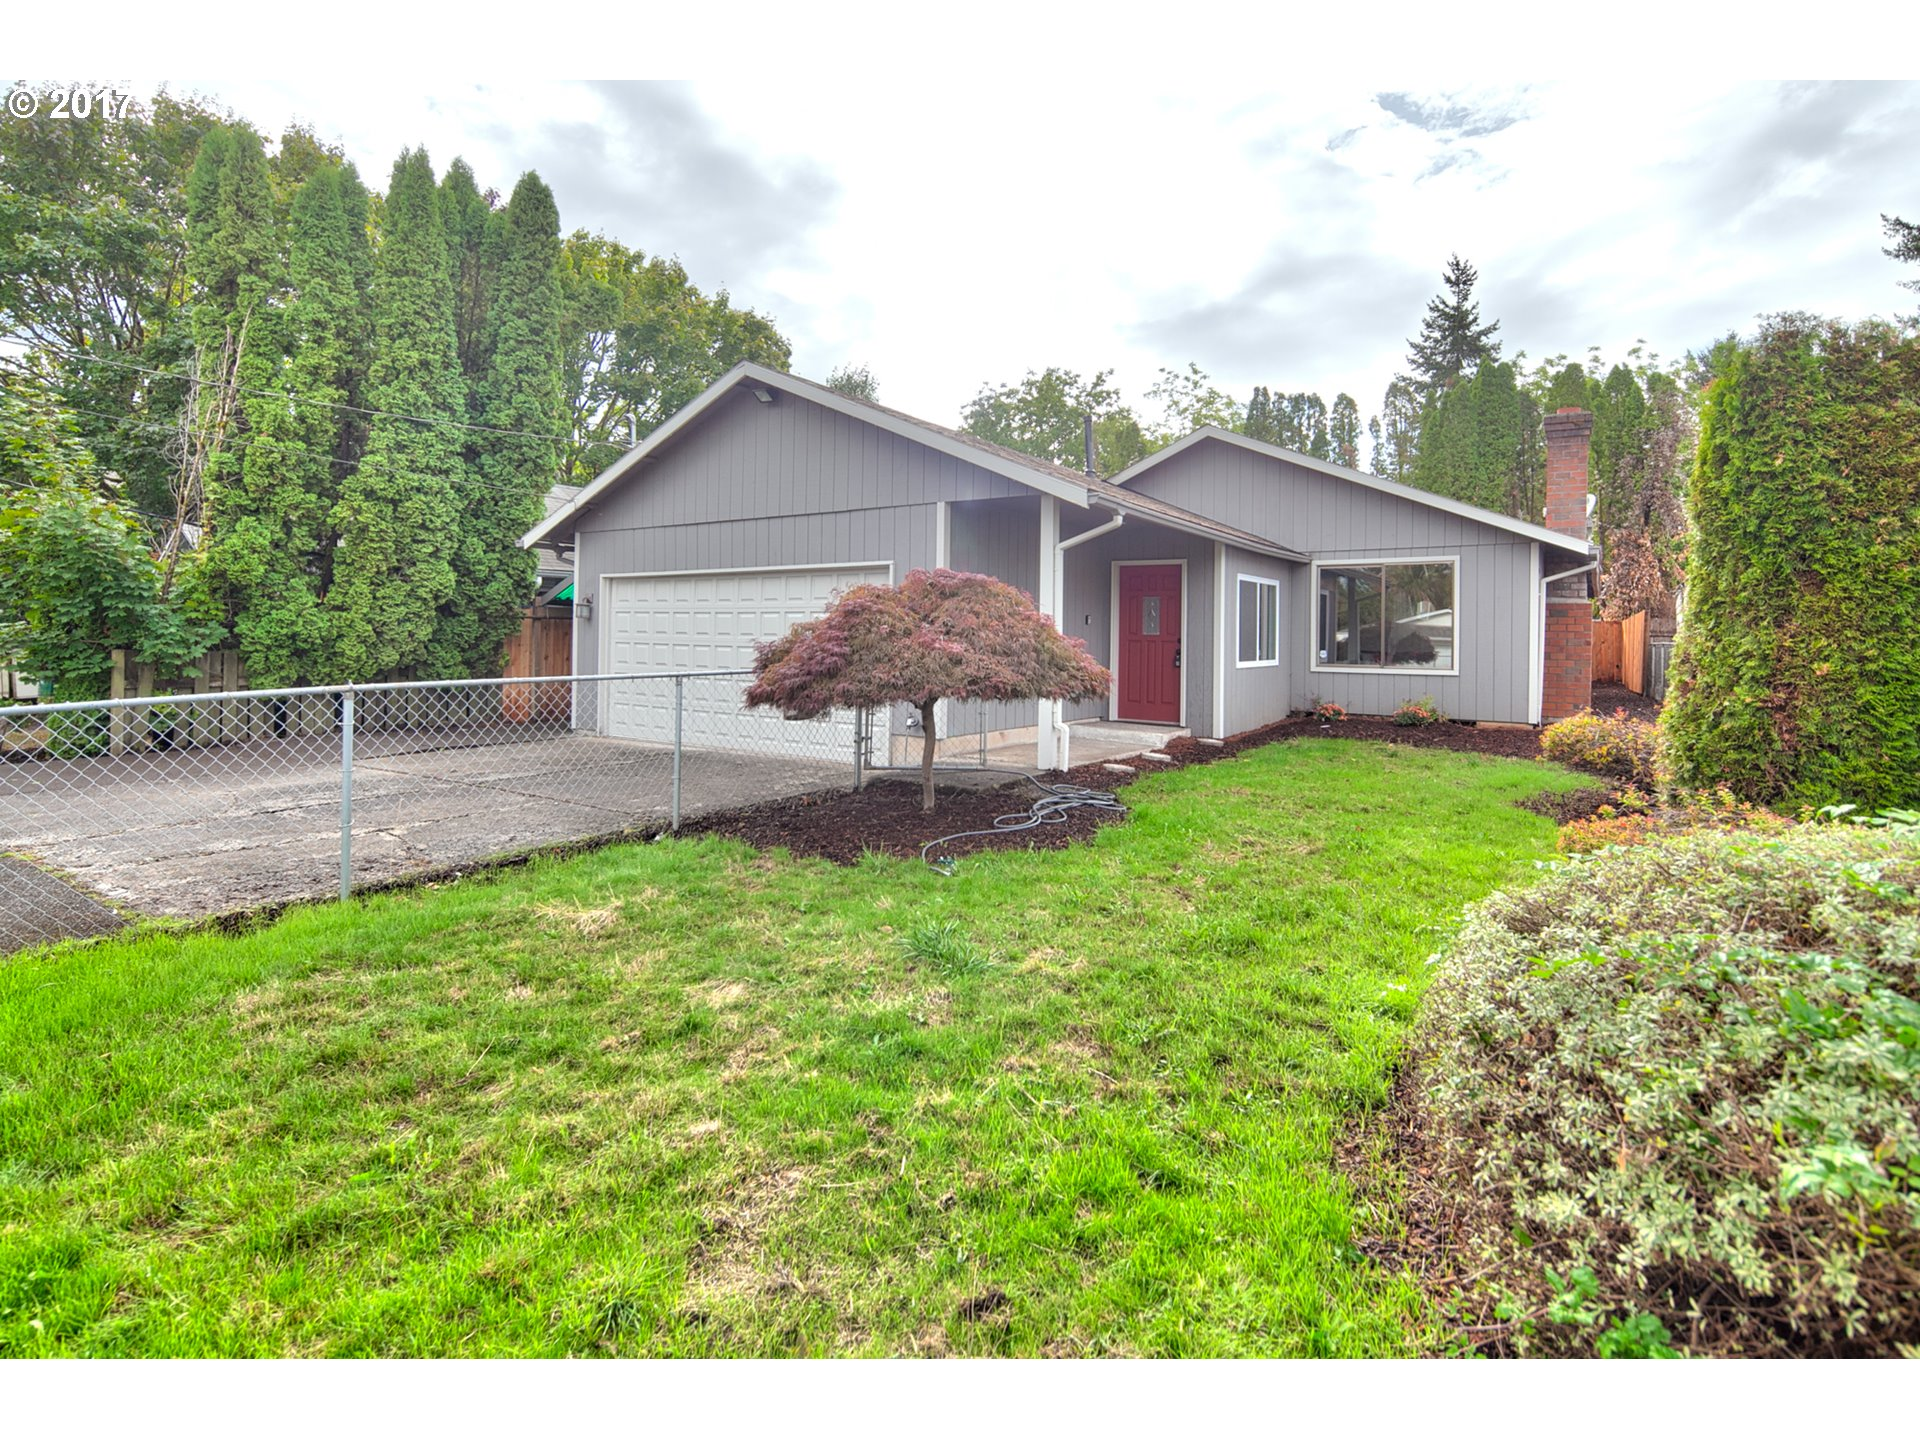 Remodeled Milwaukie 3 bedroom/ 2 bath ranch home. New hardwood laminate, granite countertops, tile backsplash, S.S. appls., updated baths, tiled fireplace, granite, fresh interior/exterior paint. New landscaping, deck and fence. Room for small RV parking/ Minutes to bus line and MAX line.